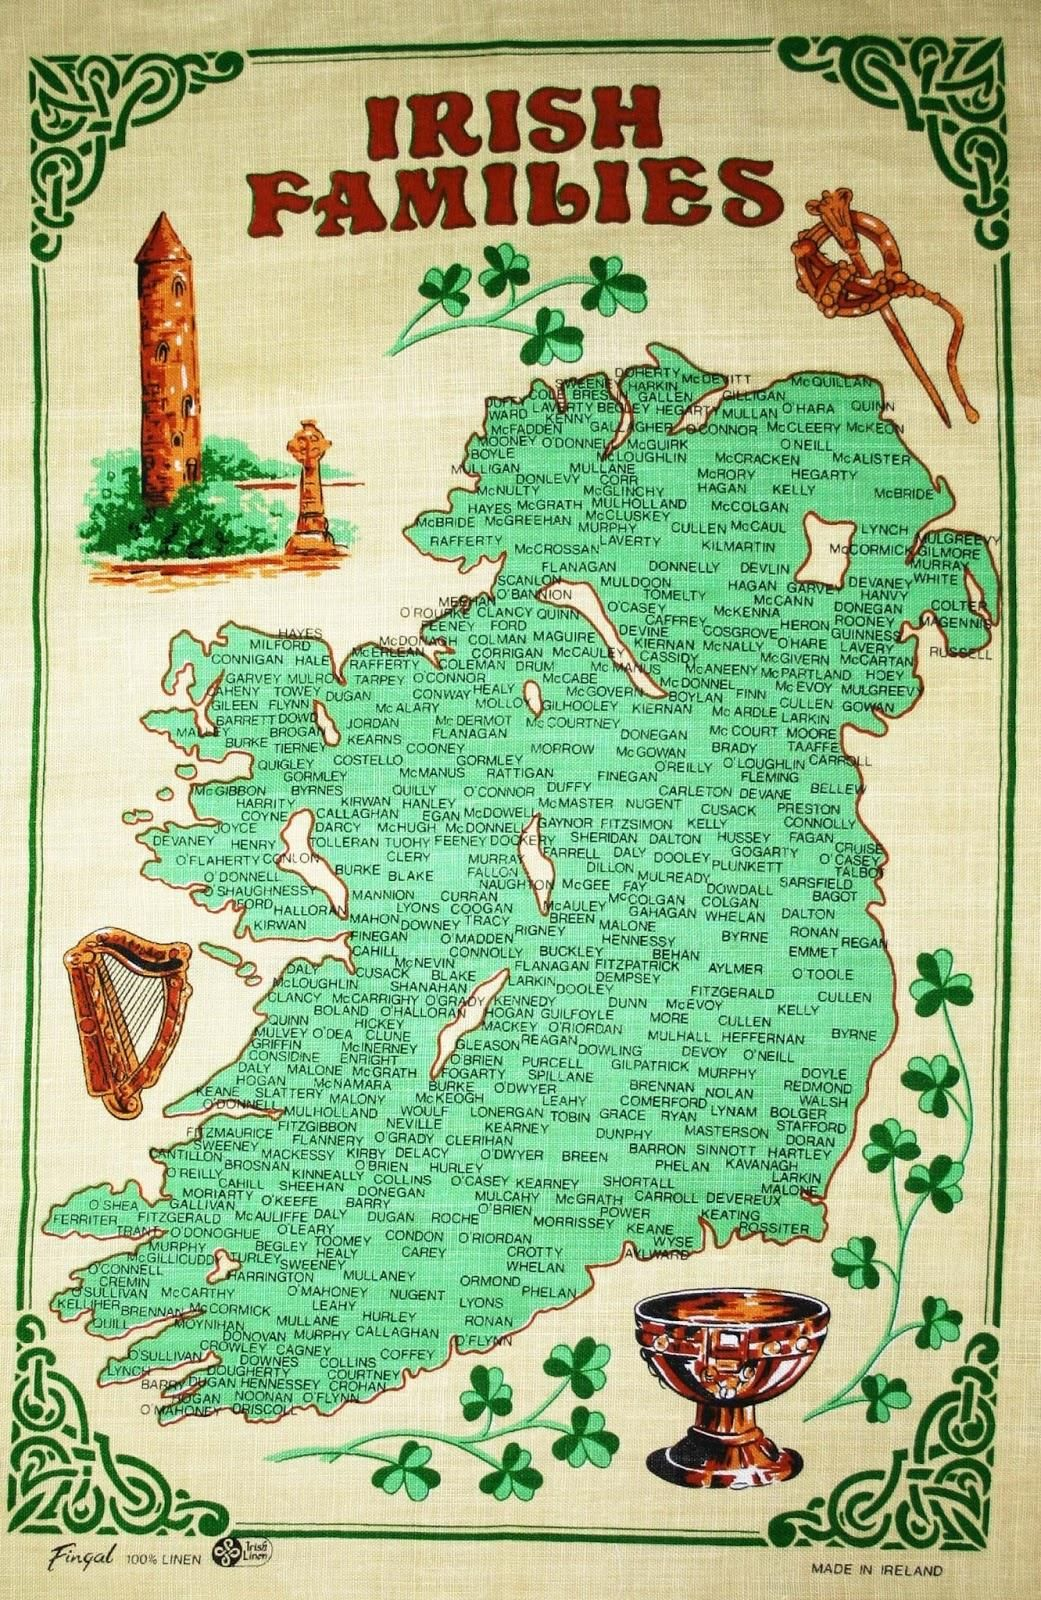 Ireland: Family Names: Ireland of a Thousand Welcomes on